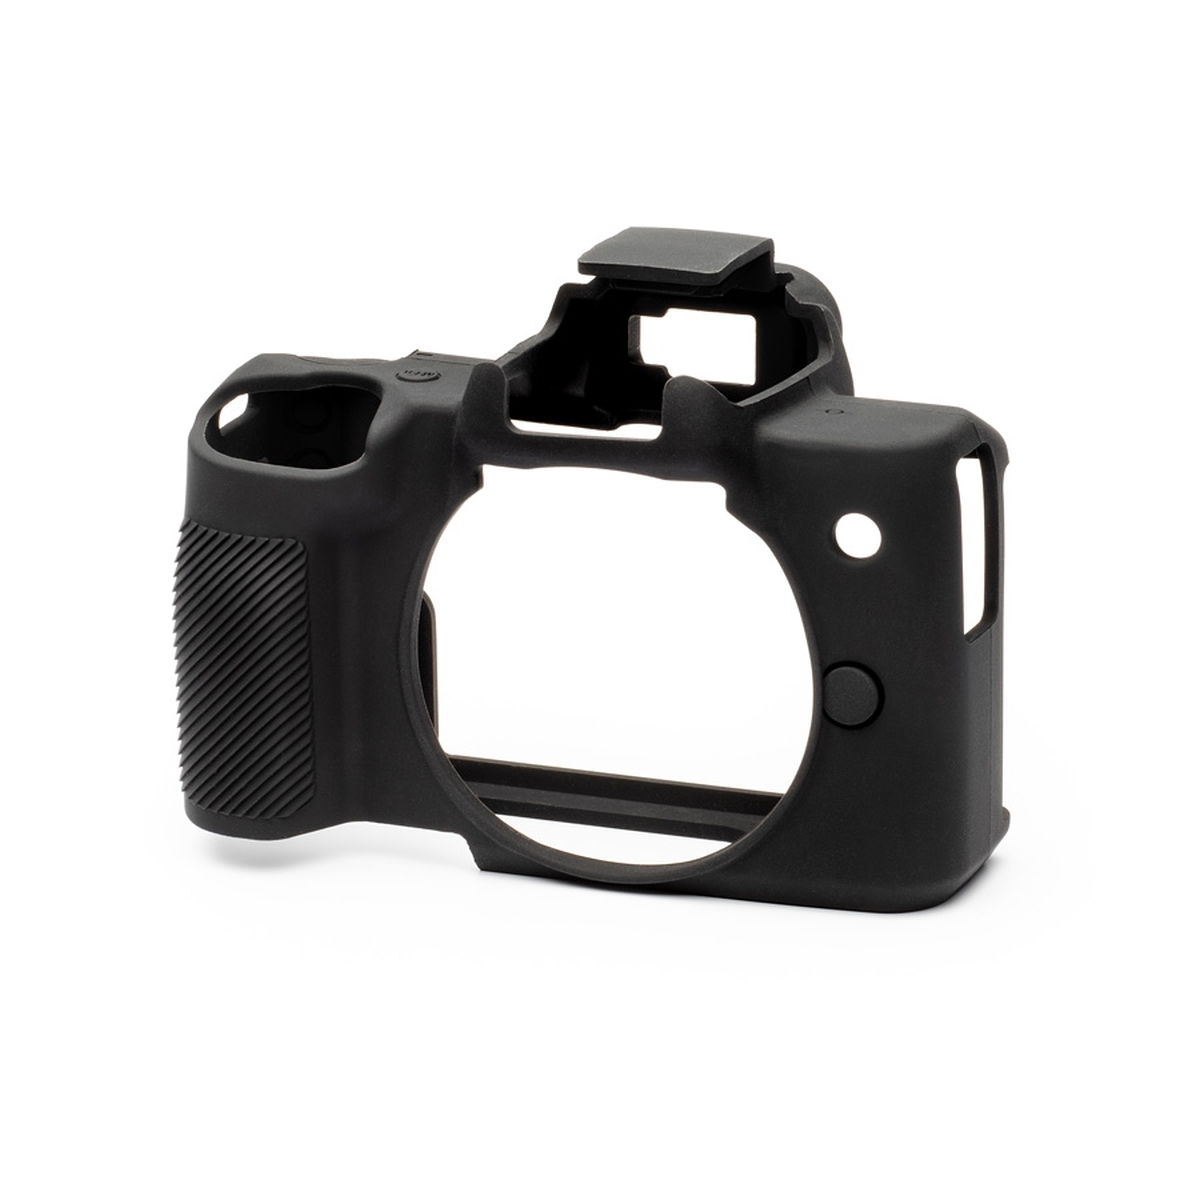 Walimex pro easyCover for Canon M50/M50 Mark II